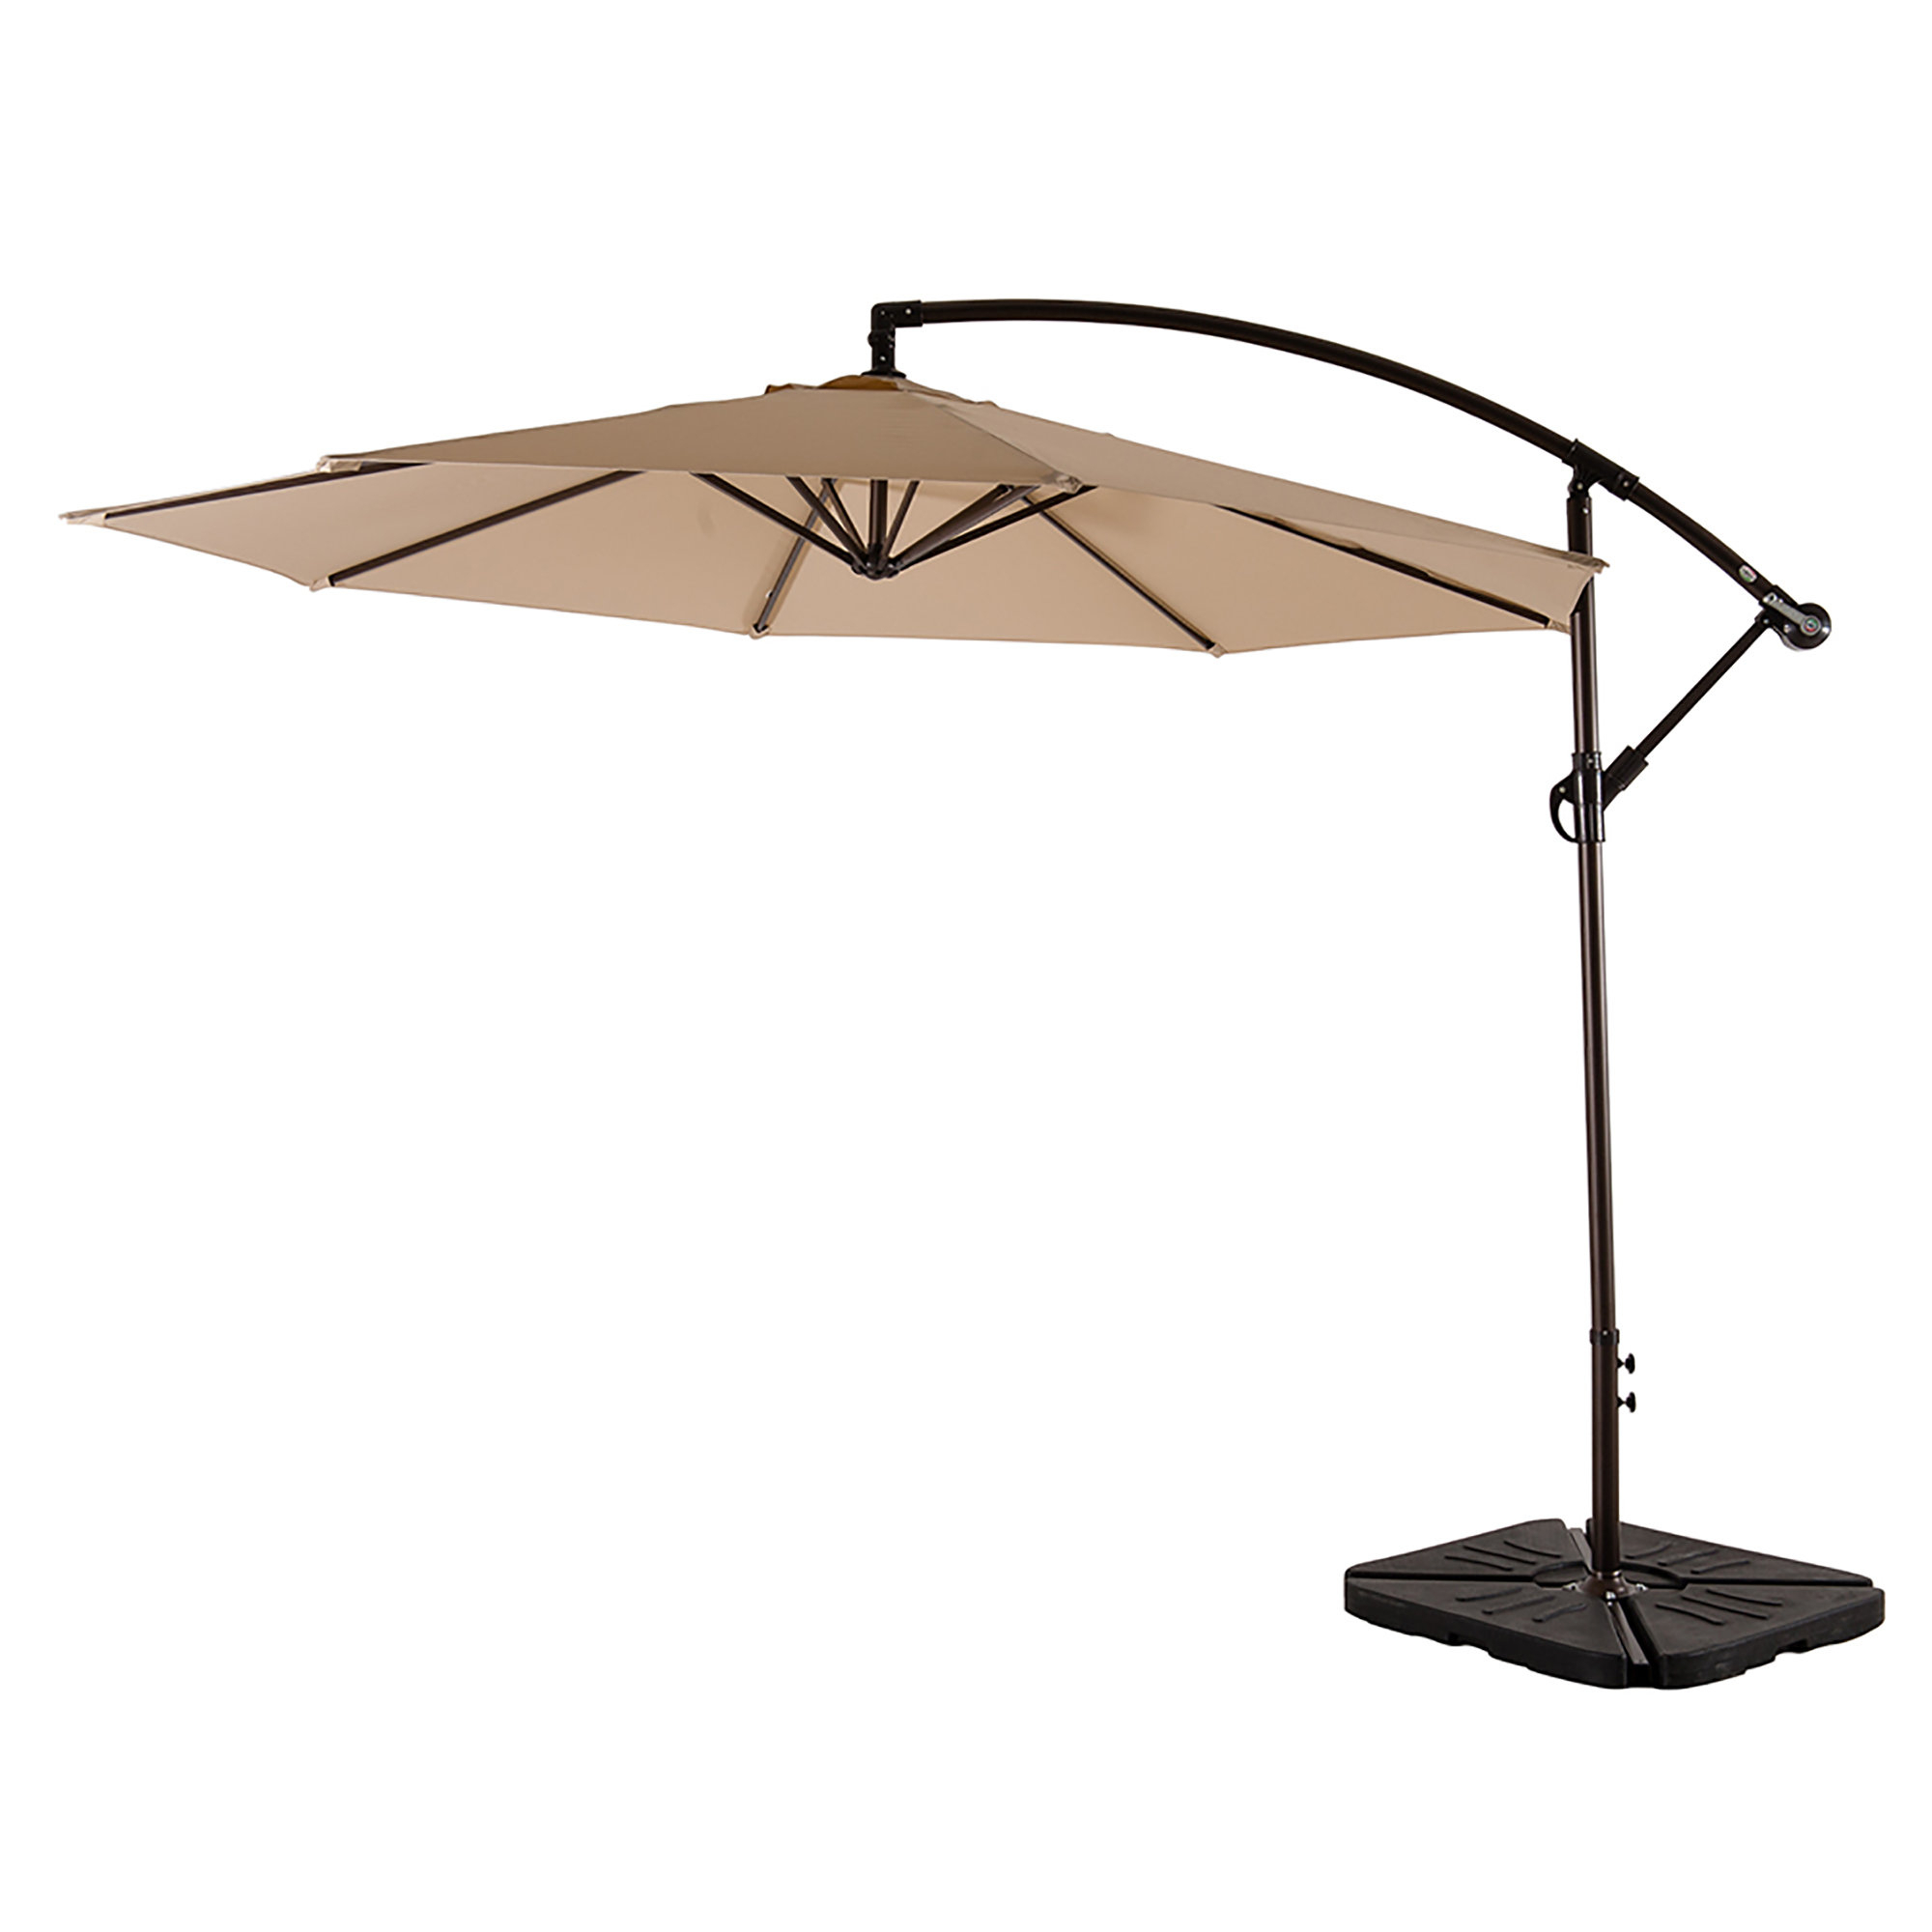 Newest Bostic Cantilever Umbrellas Within Kizzie Market 10' Cantilever Umbrella (View 7 of 20)